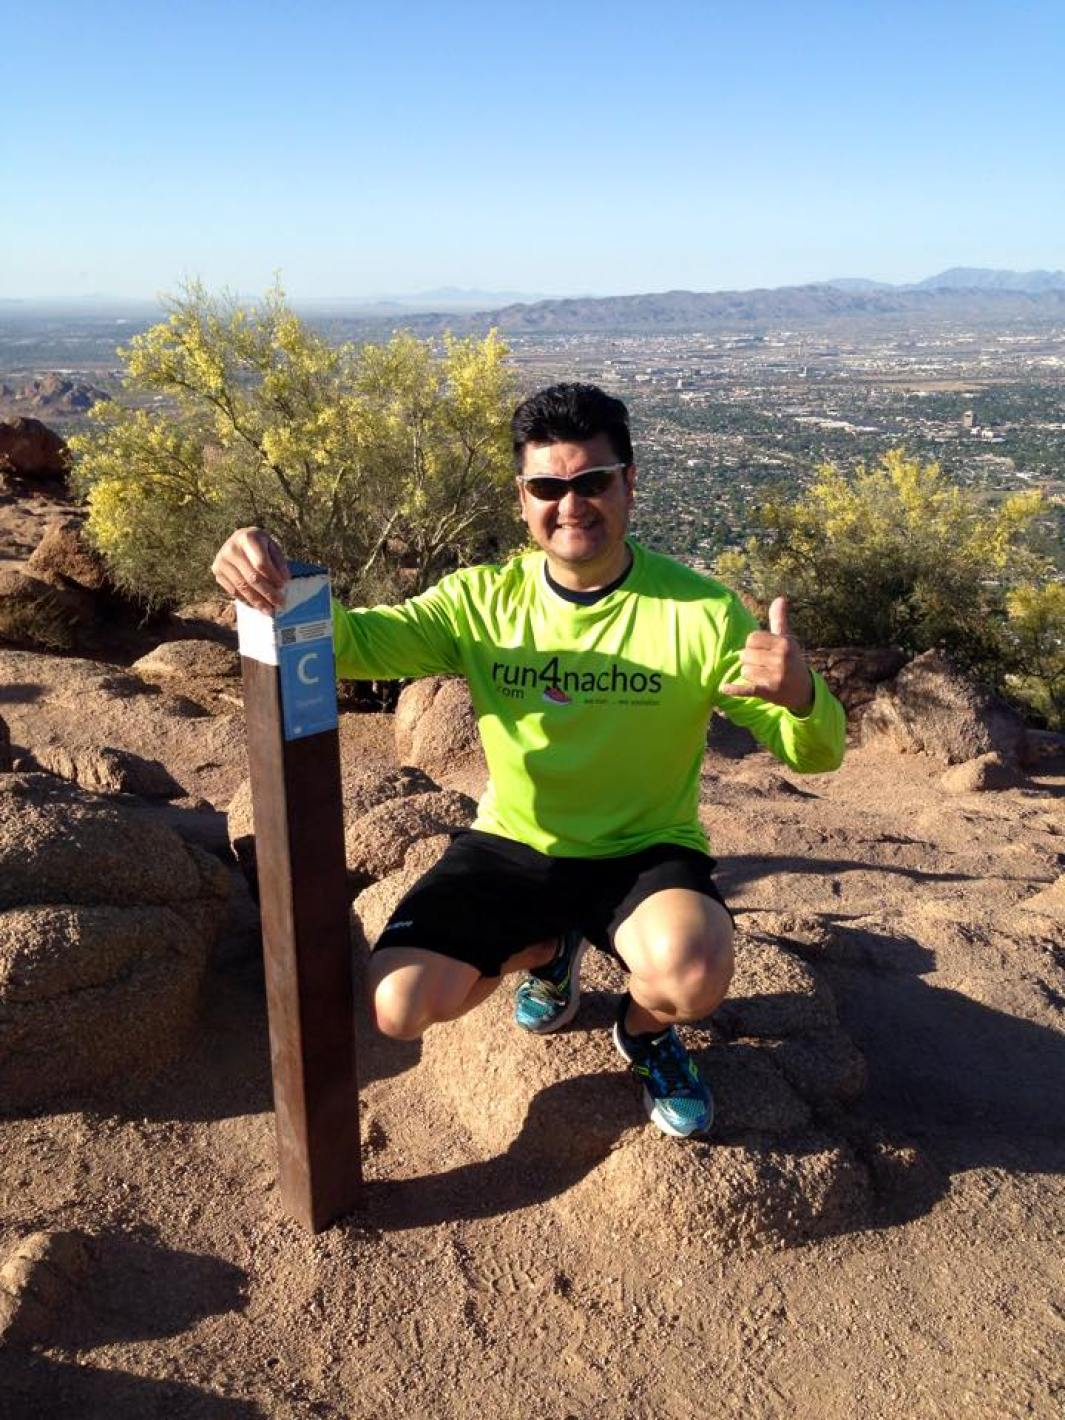 Roger at the summit of Camelback Mountain, Phoenix.